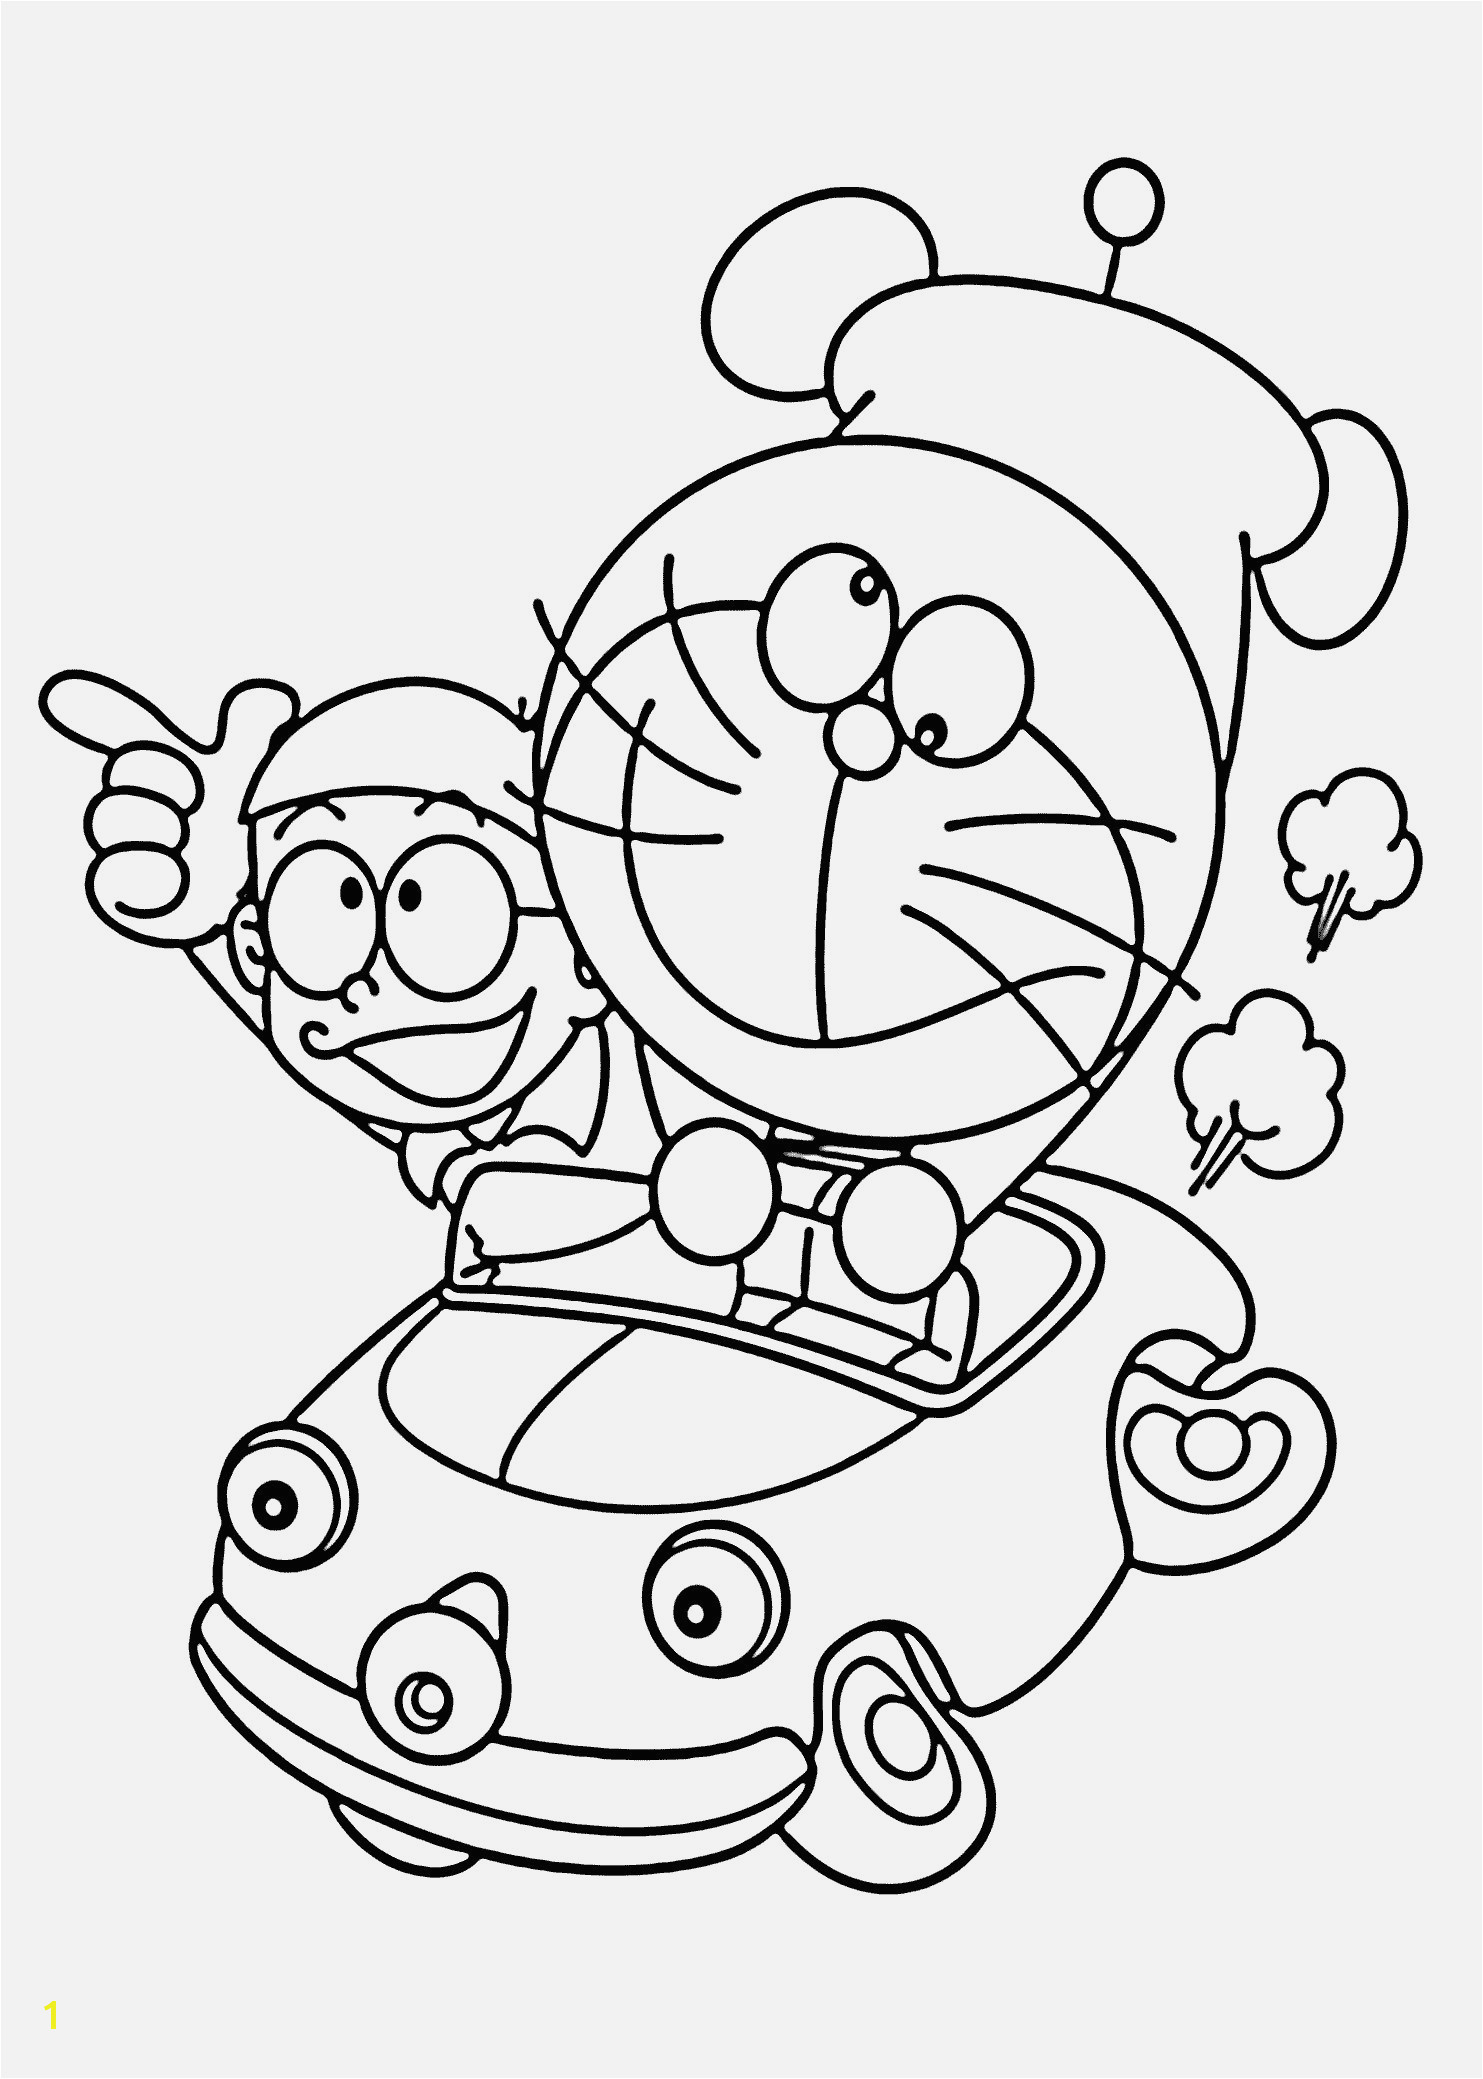 Blastoise Coloring Page Best Easy Friendship Coloring Pages Luxury Coloring Sheets for Girls Printable